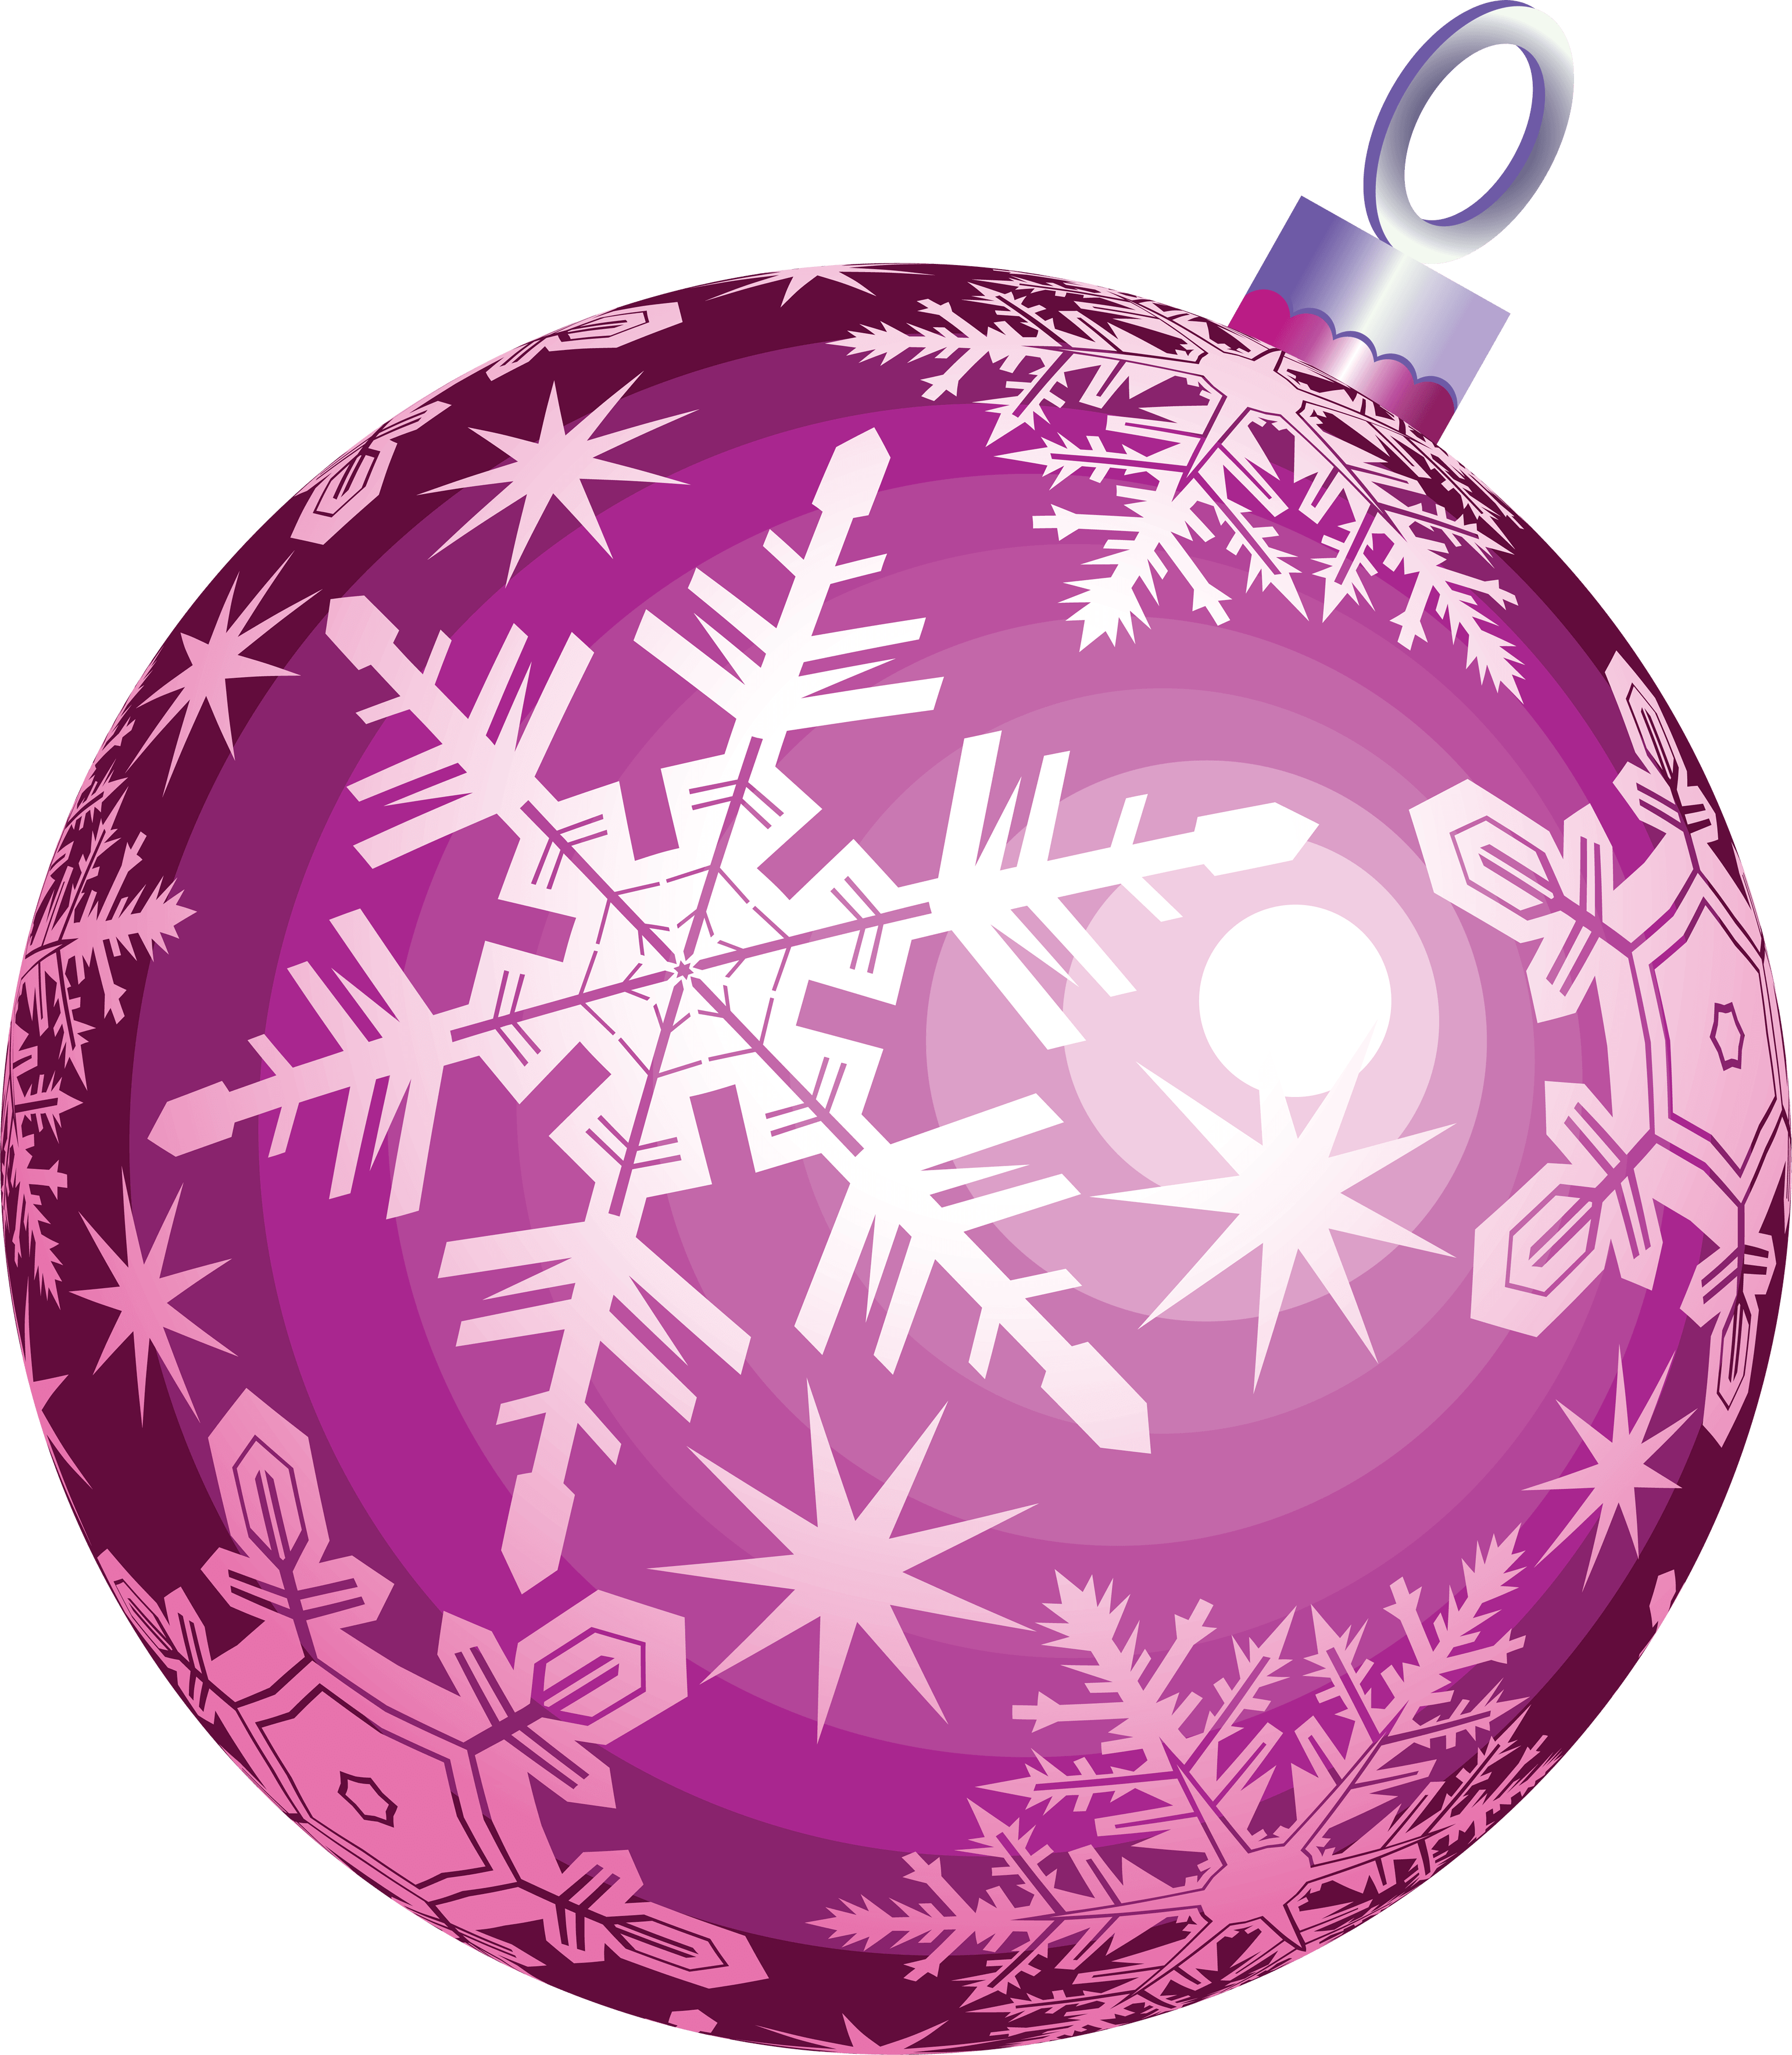 purple hd christmas ball toy png image